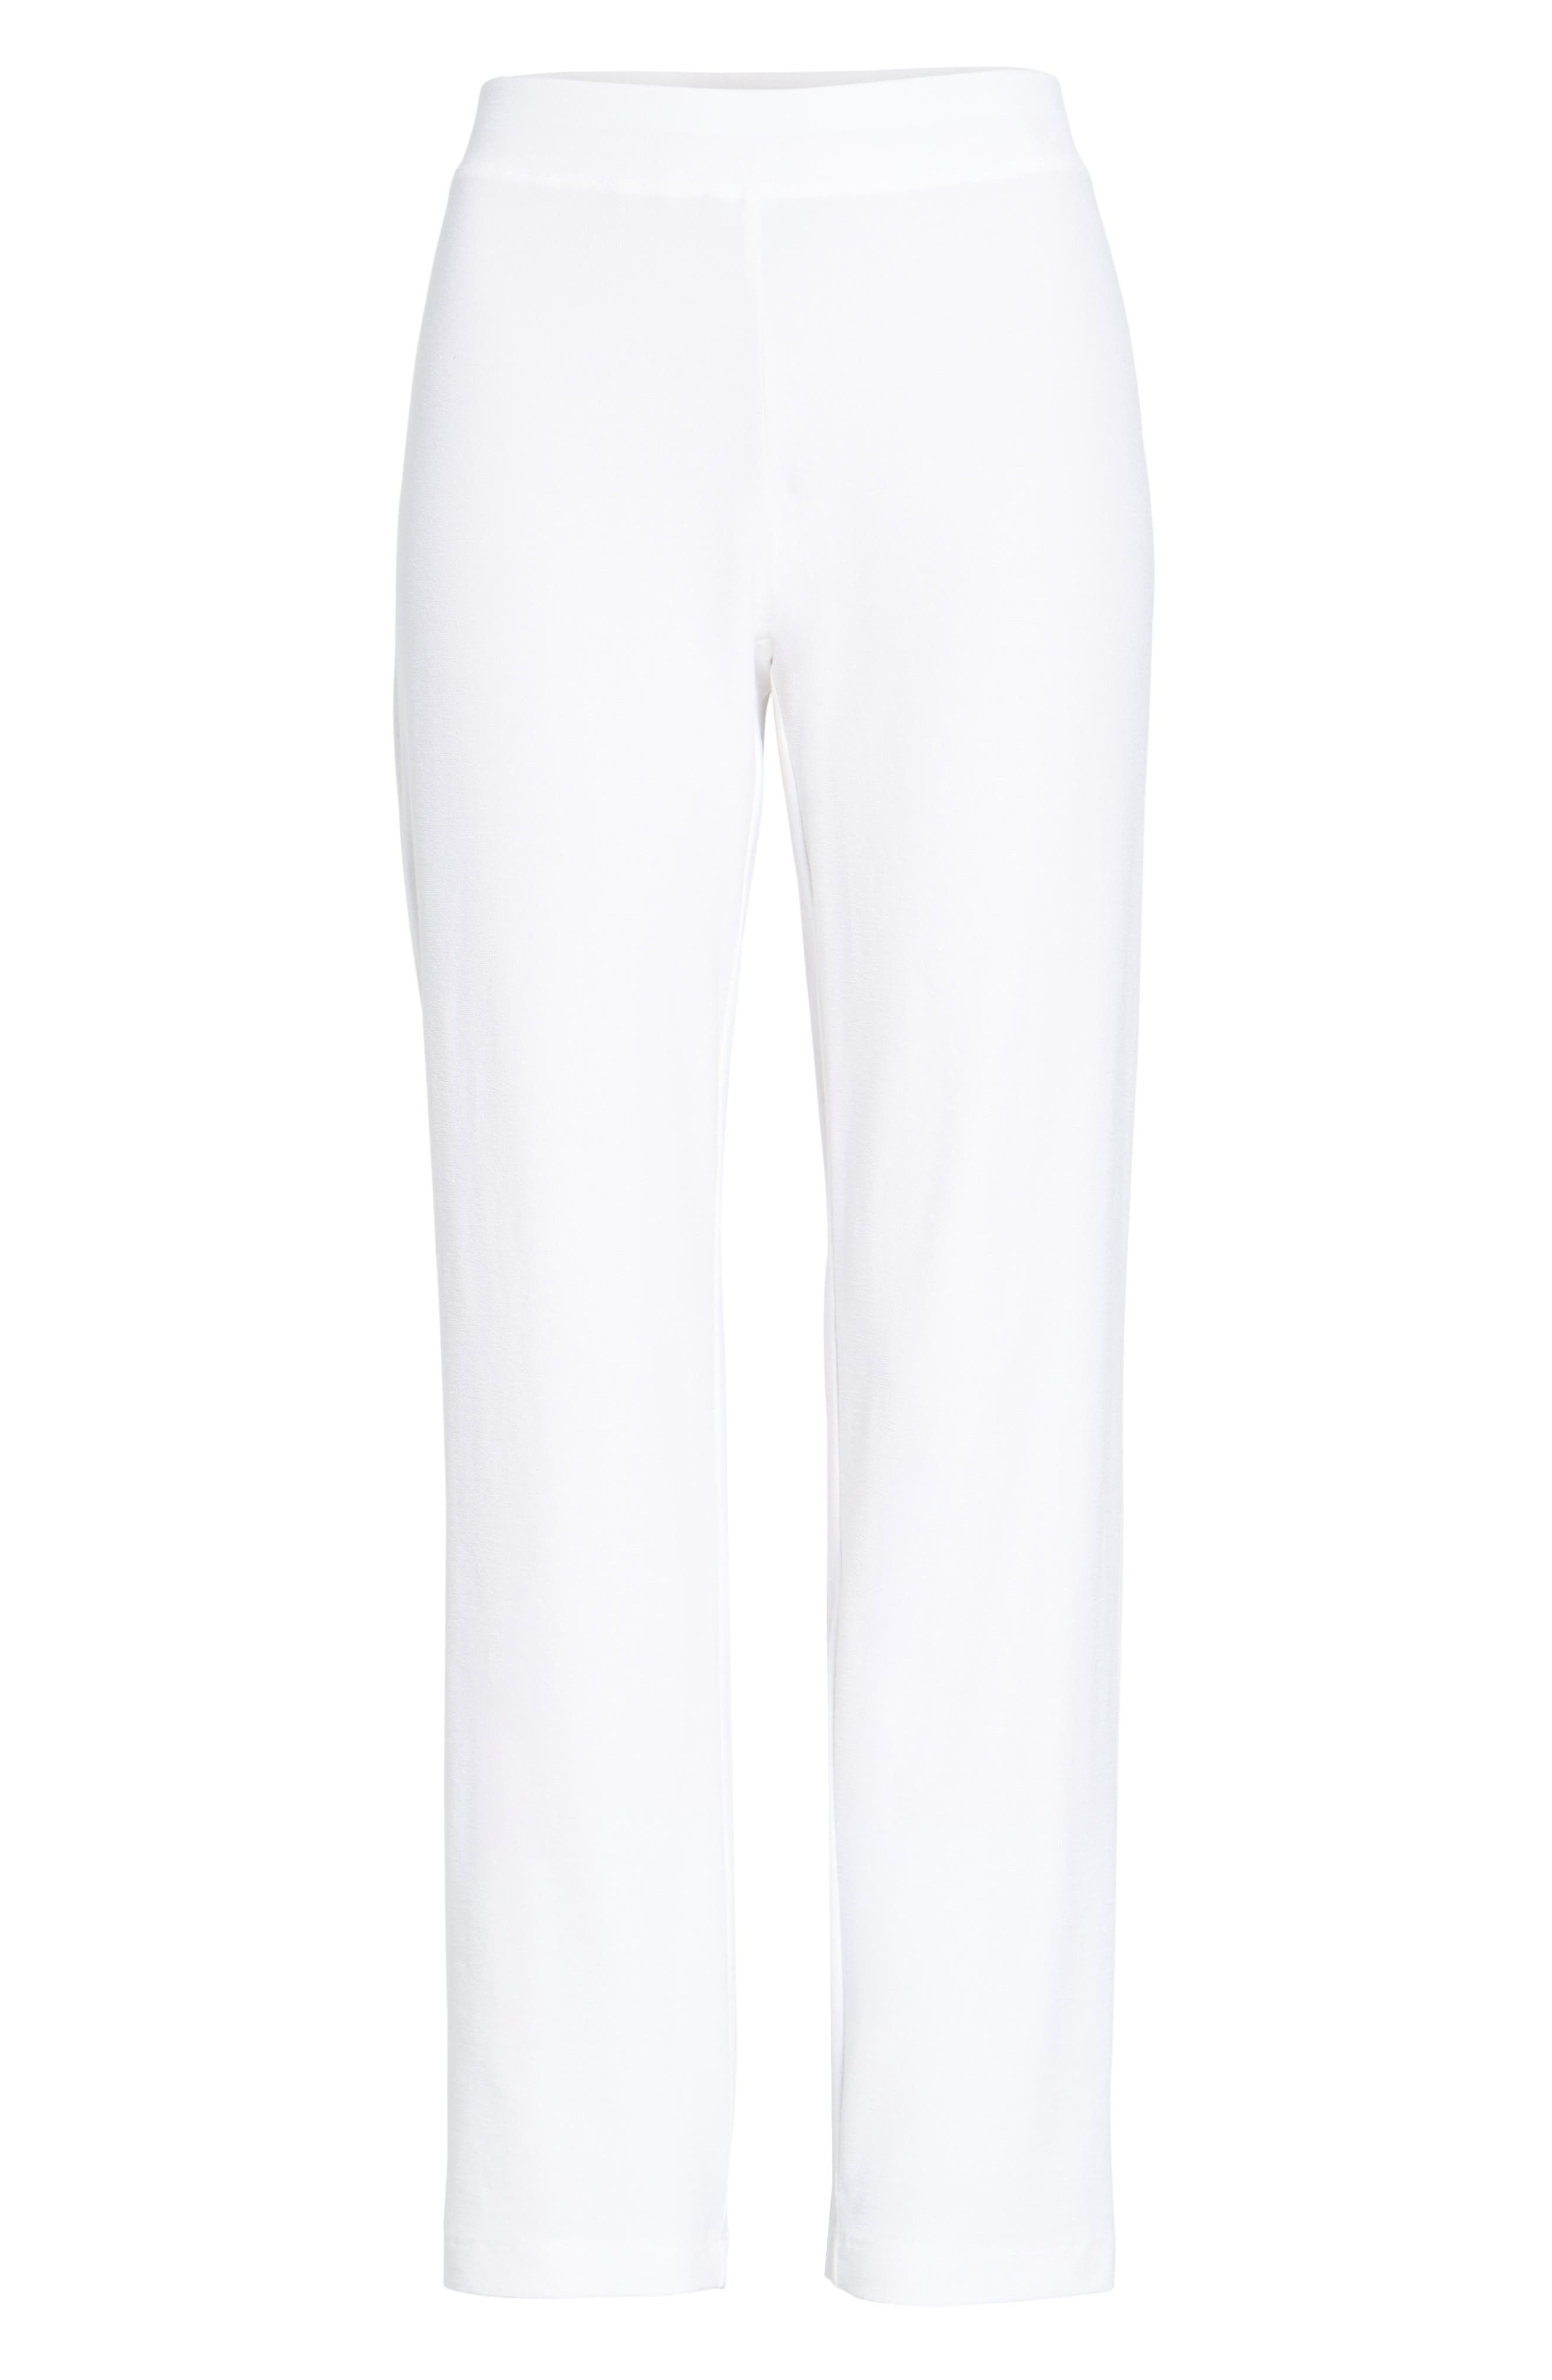 EILEEN FISHER, Stretch Crepe Slim Ankle Pants, Alternate thumbnail 6, color, WHITE